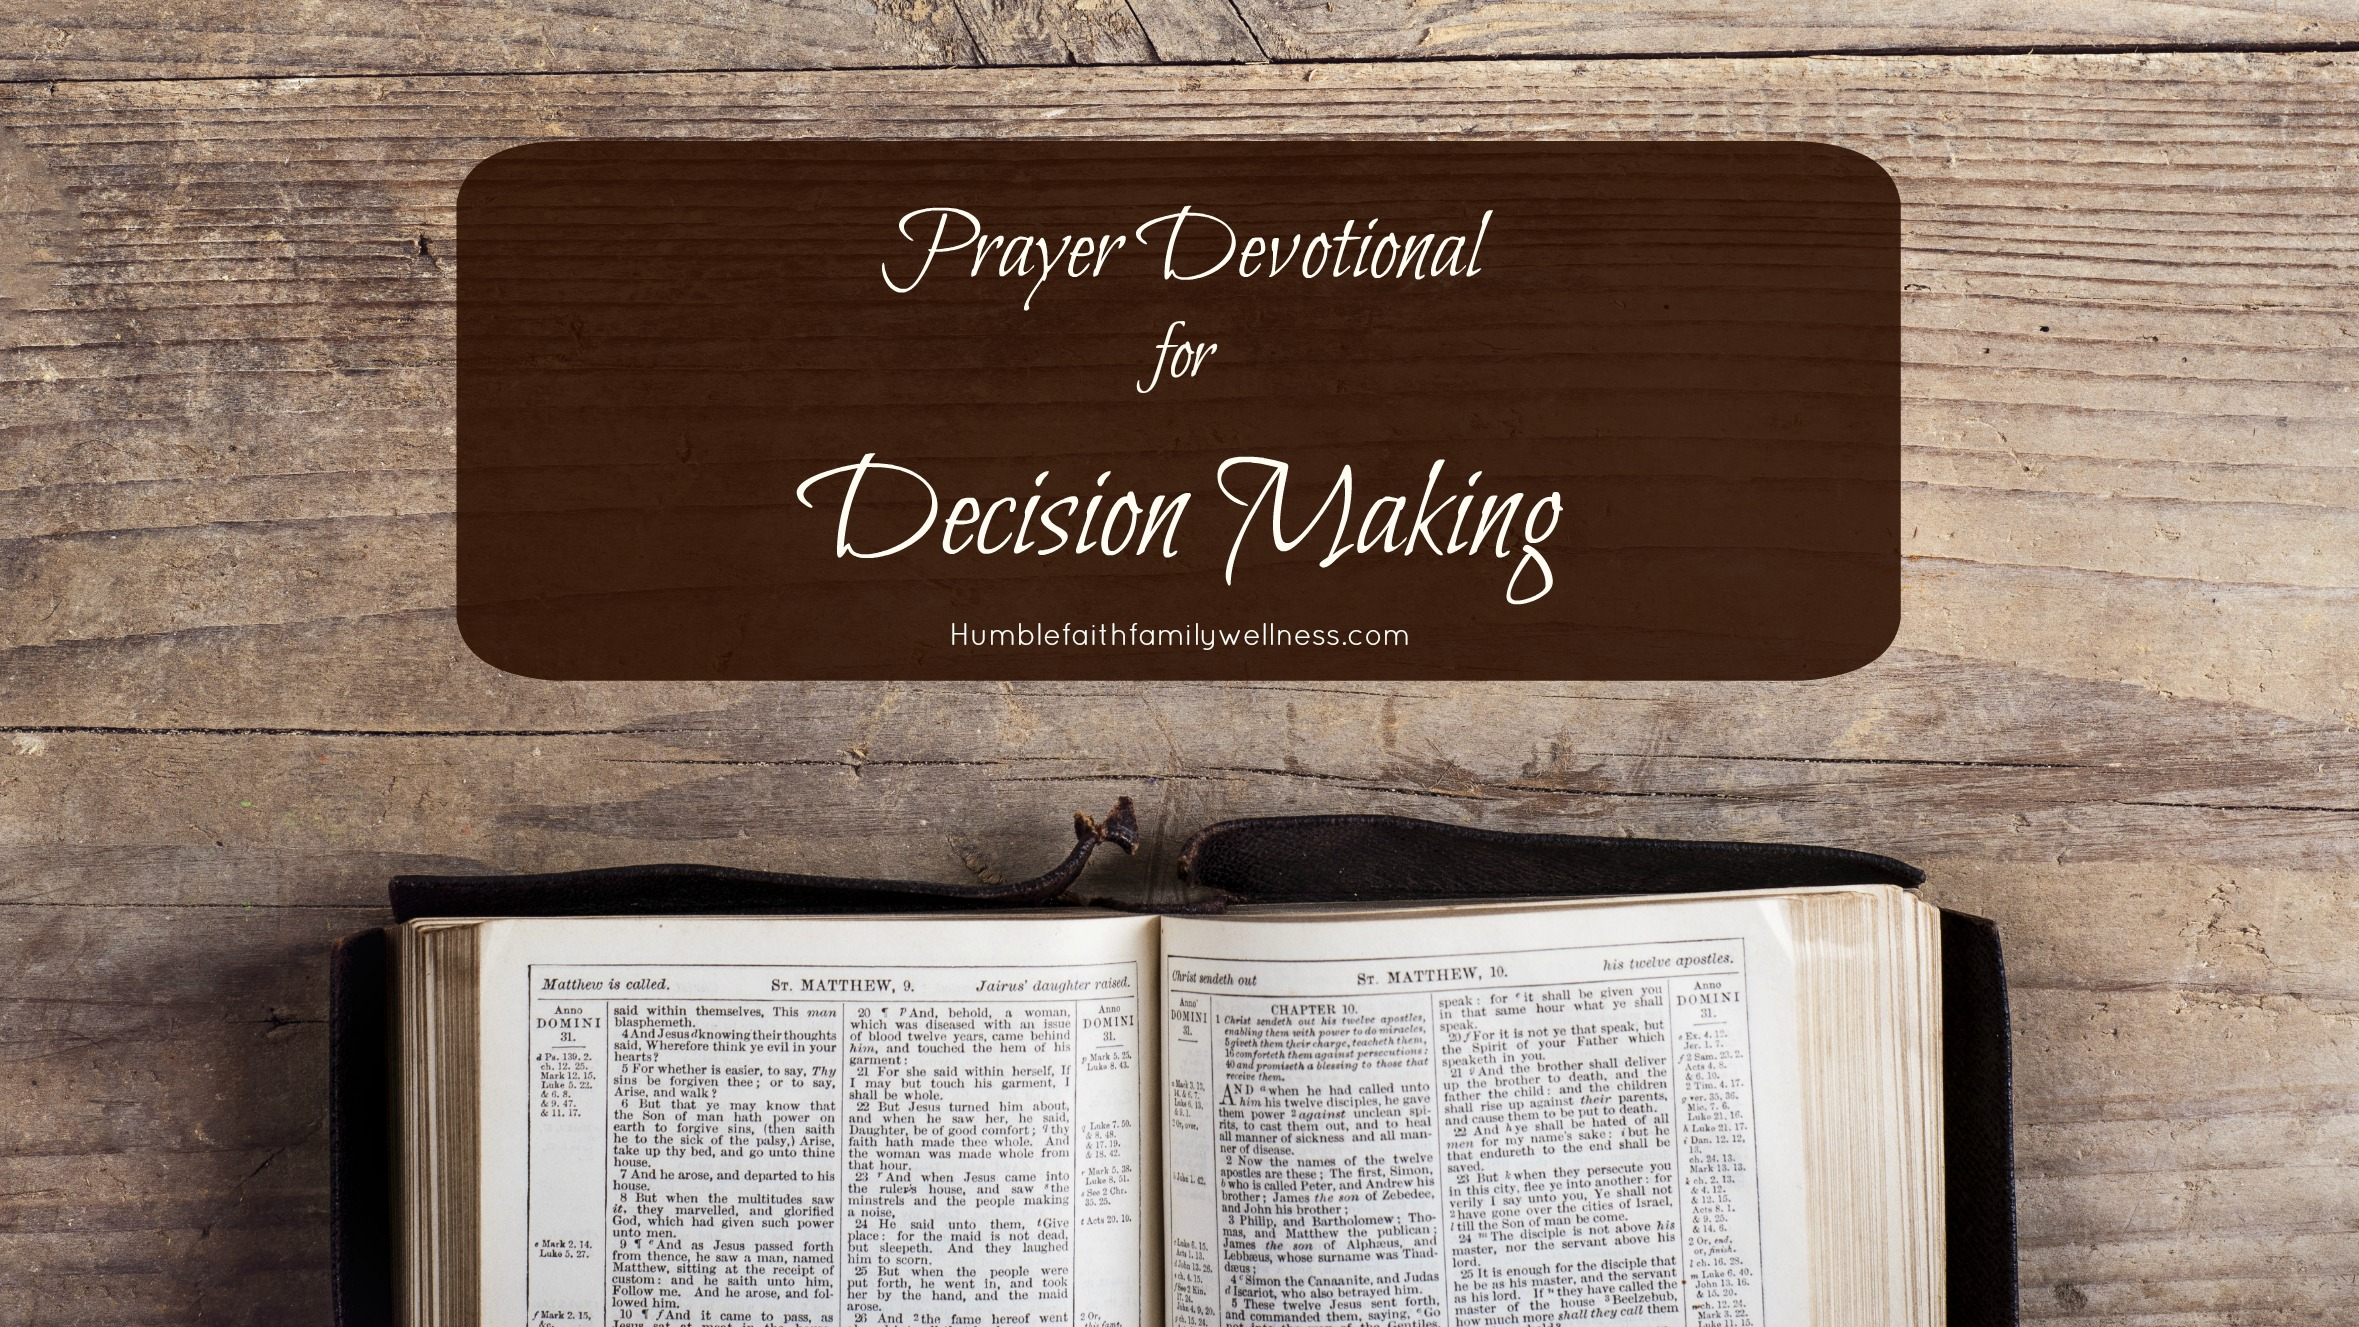 Decision Making, Prayer devotional